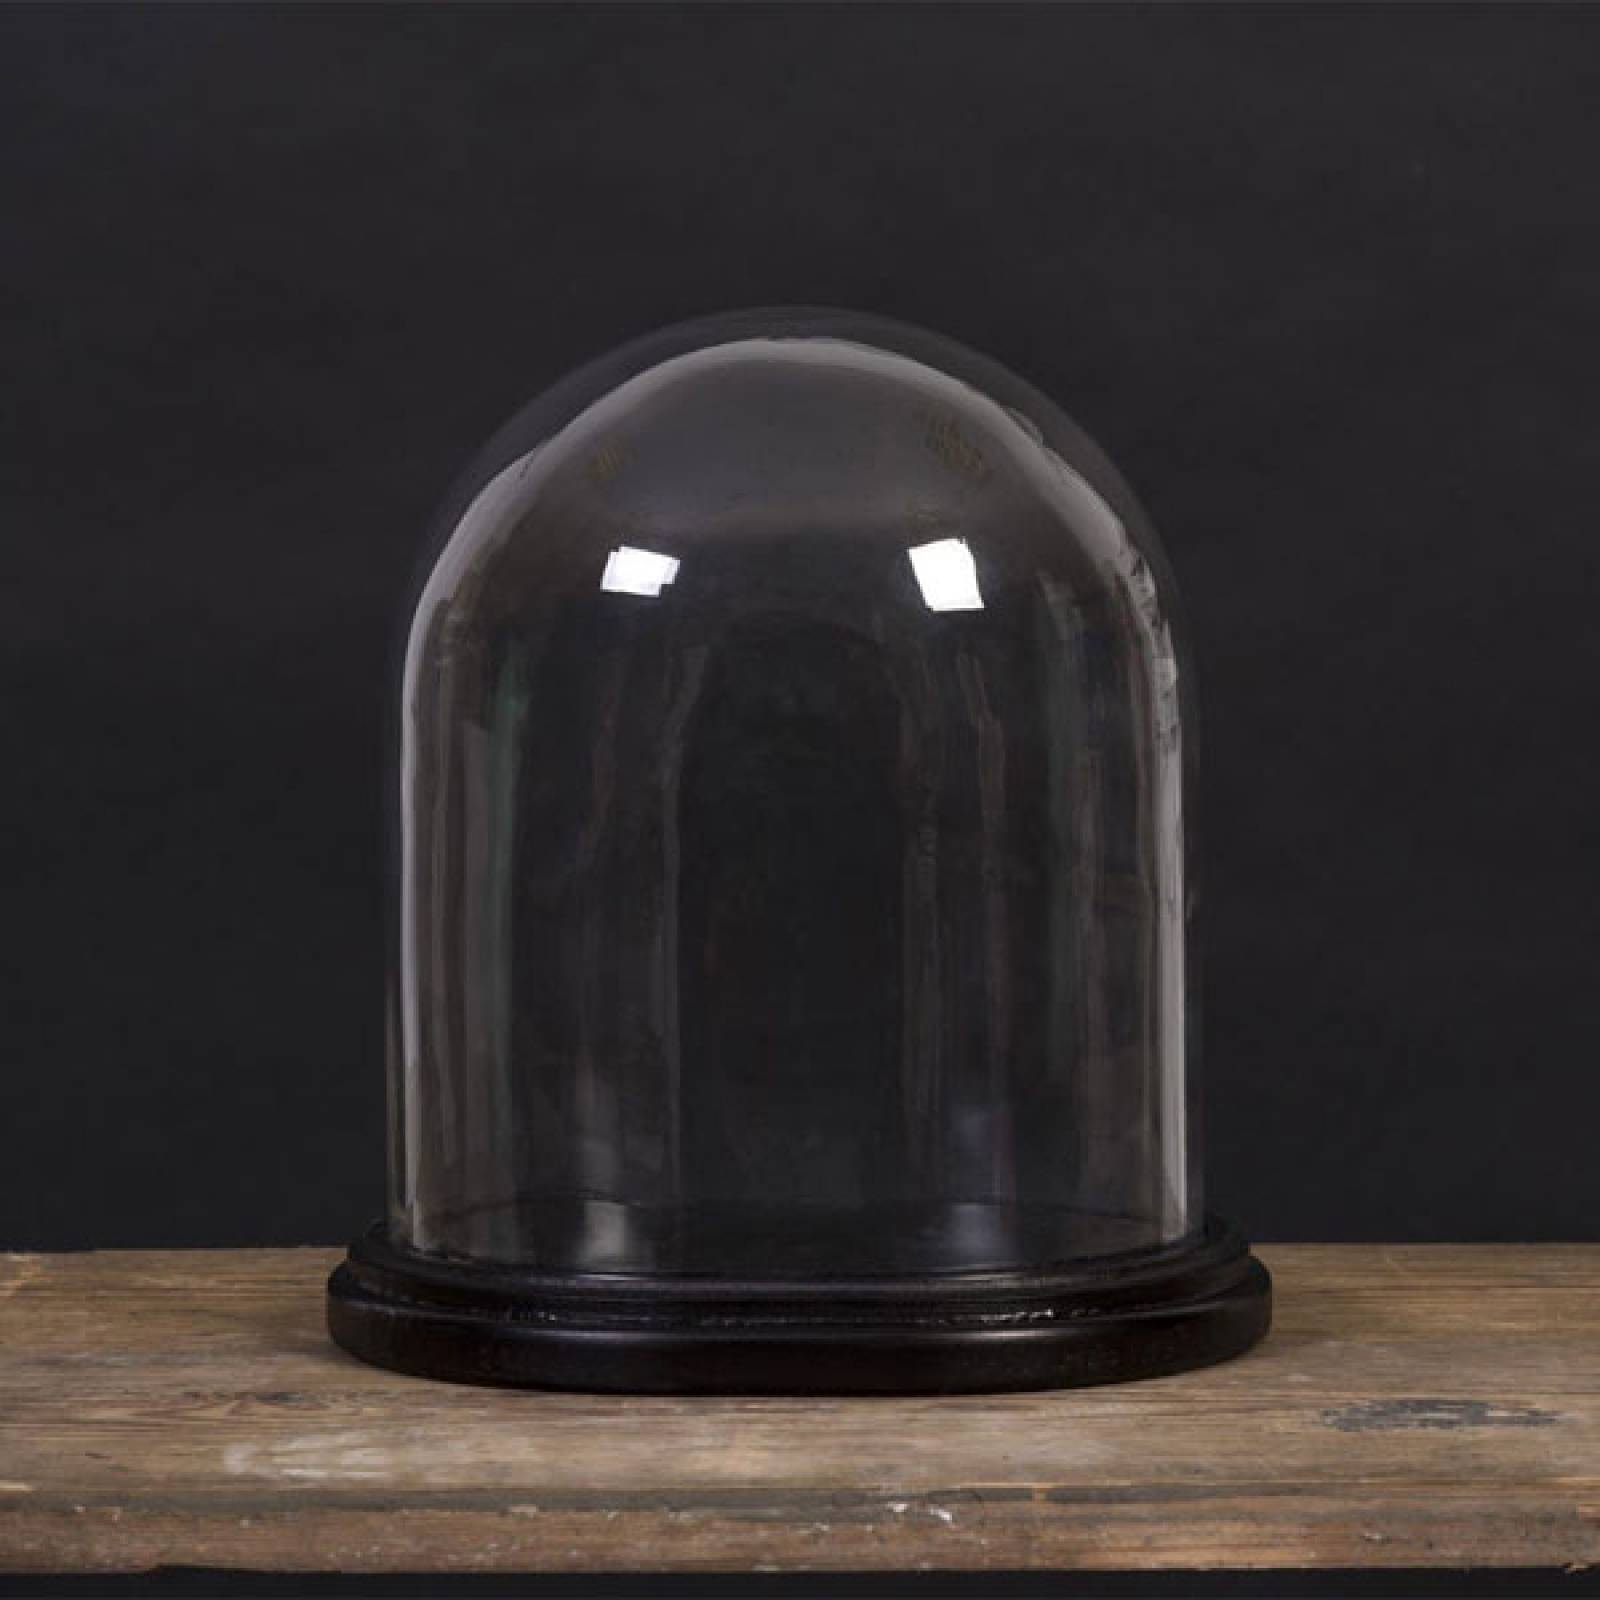 Medium Oval Glass Dome And Base 23cm x 18x  21.5cm thumbnails